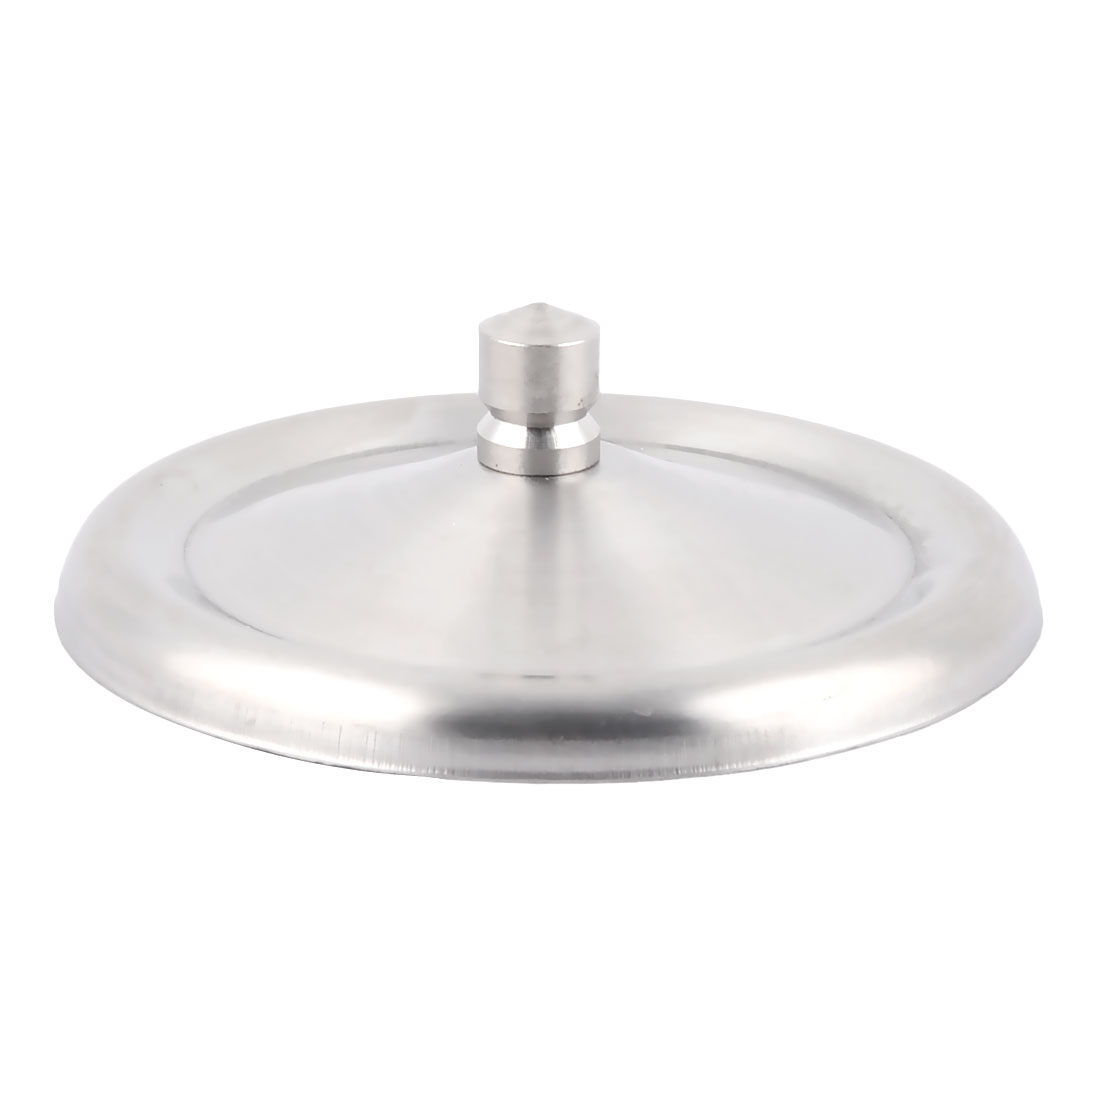 Home Stainless Steel Round Shaped Coffee Drink Cup Lid Cover Silver Tone 8cm Dia - image 2 of 2